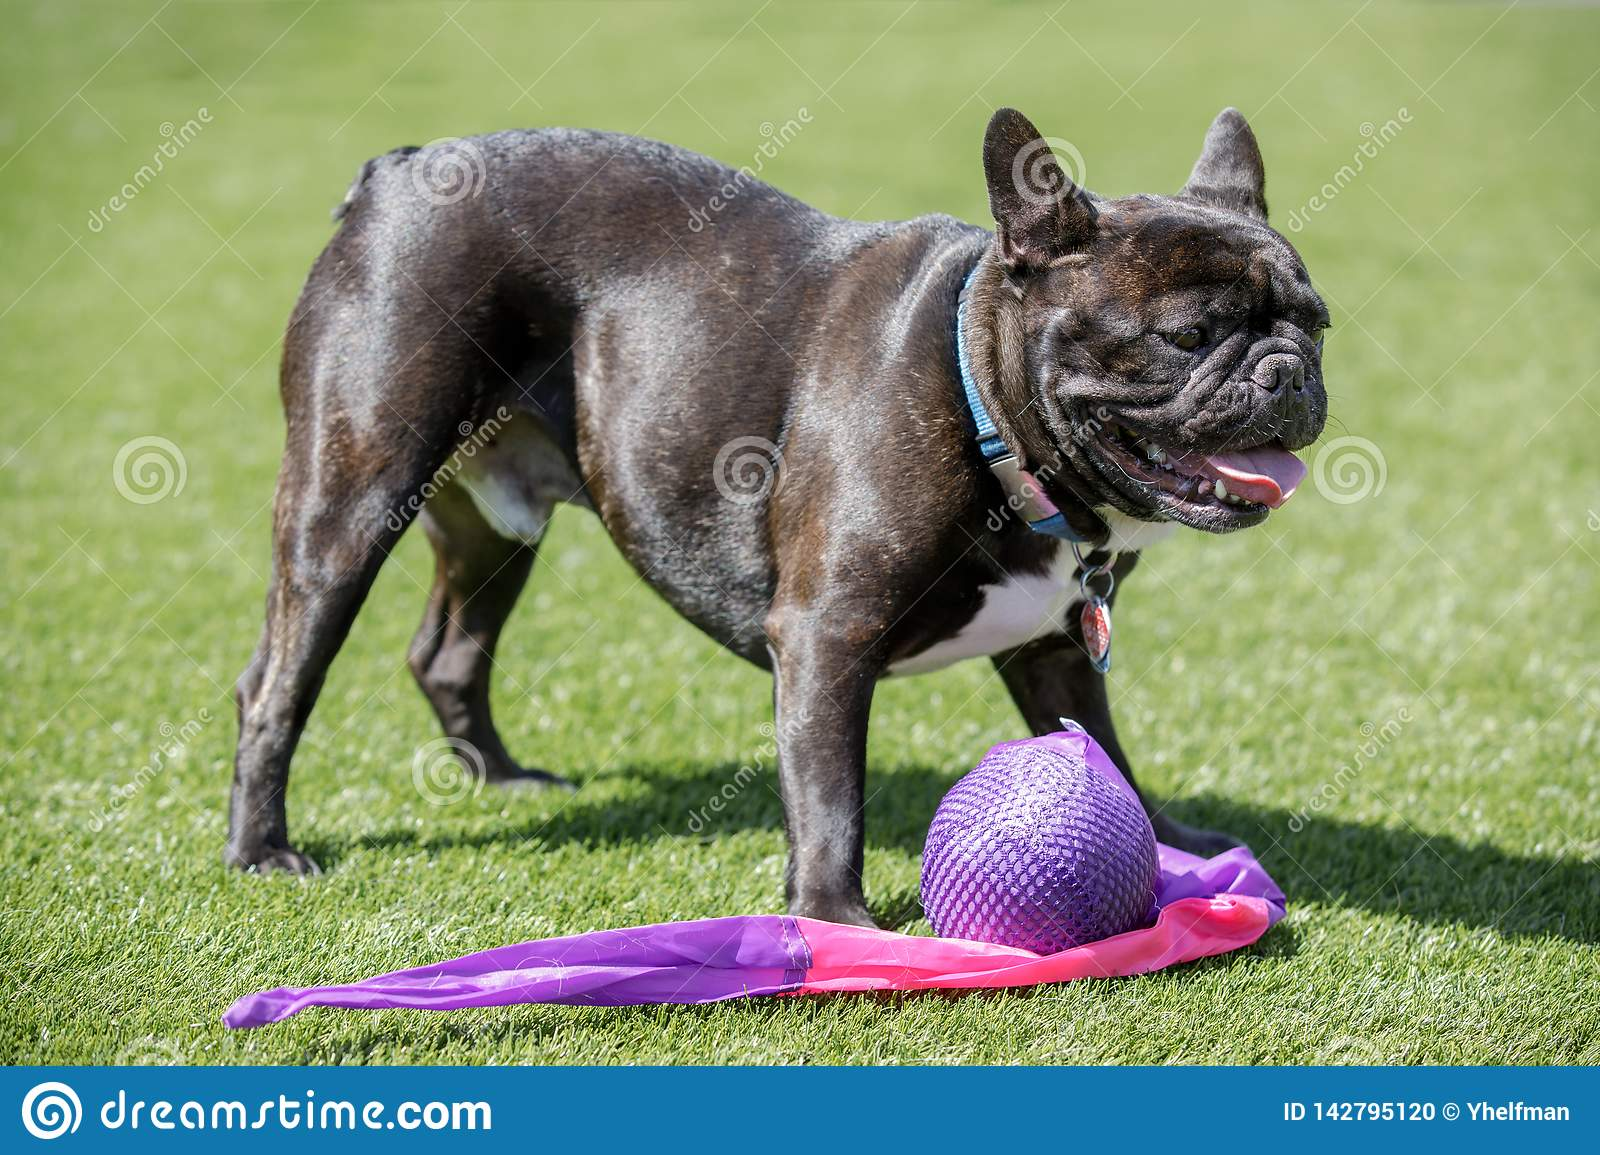 Black Brindle White Frenchie Male Standing Over His Toy Stock Photo Image Of Black Doggy 142795120